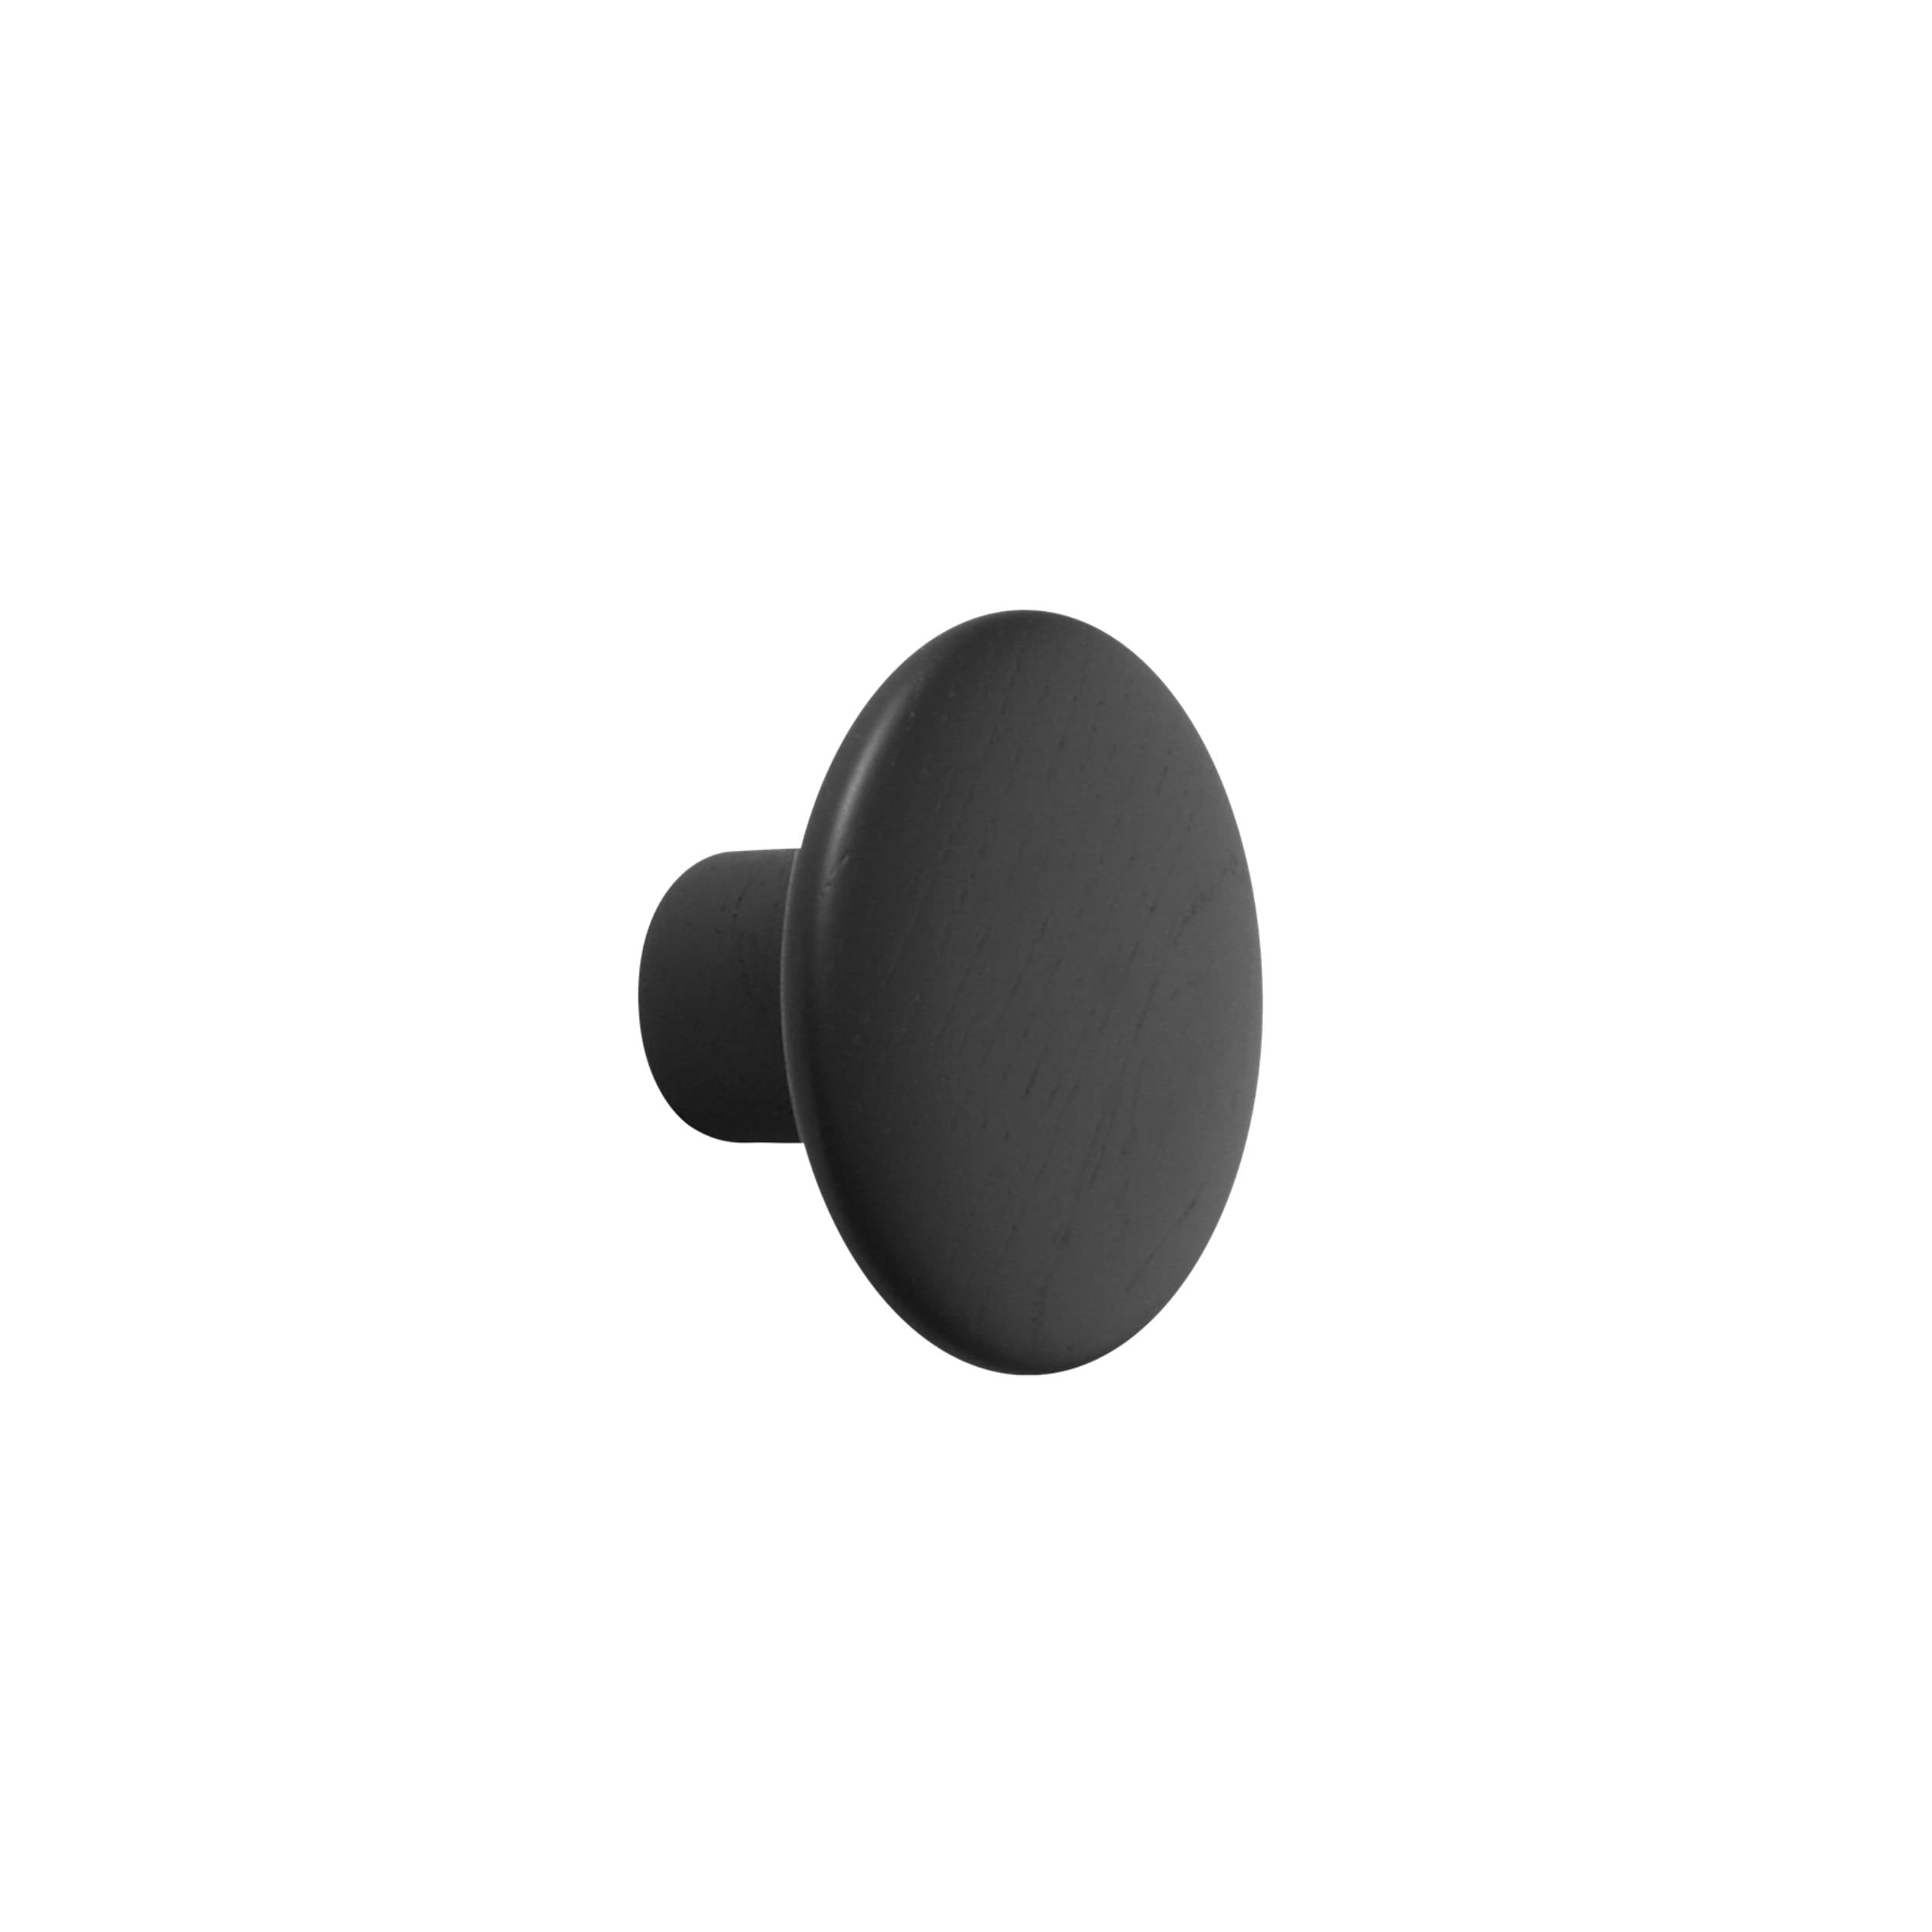 The Dots Wall Hooks: Black + Small